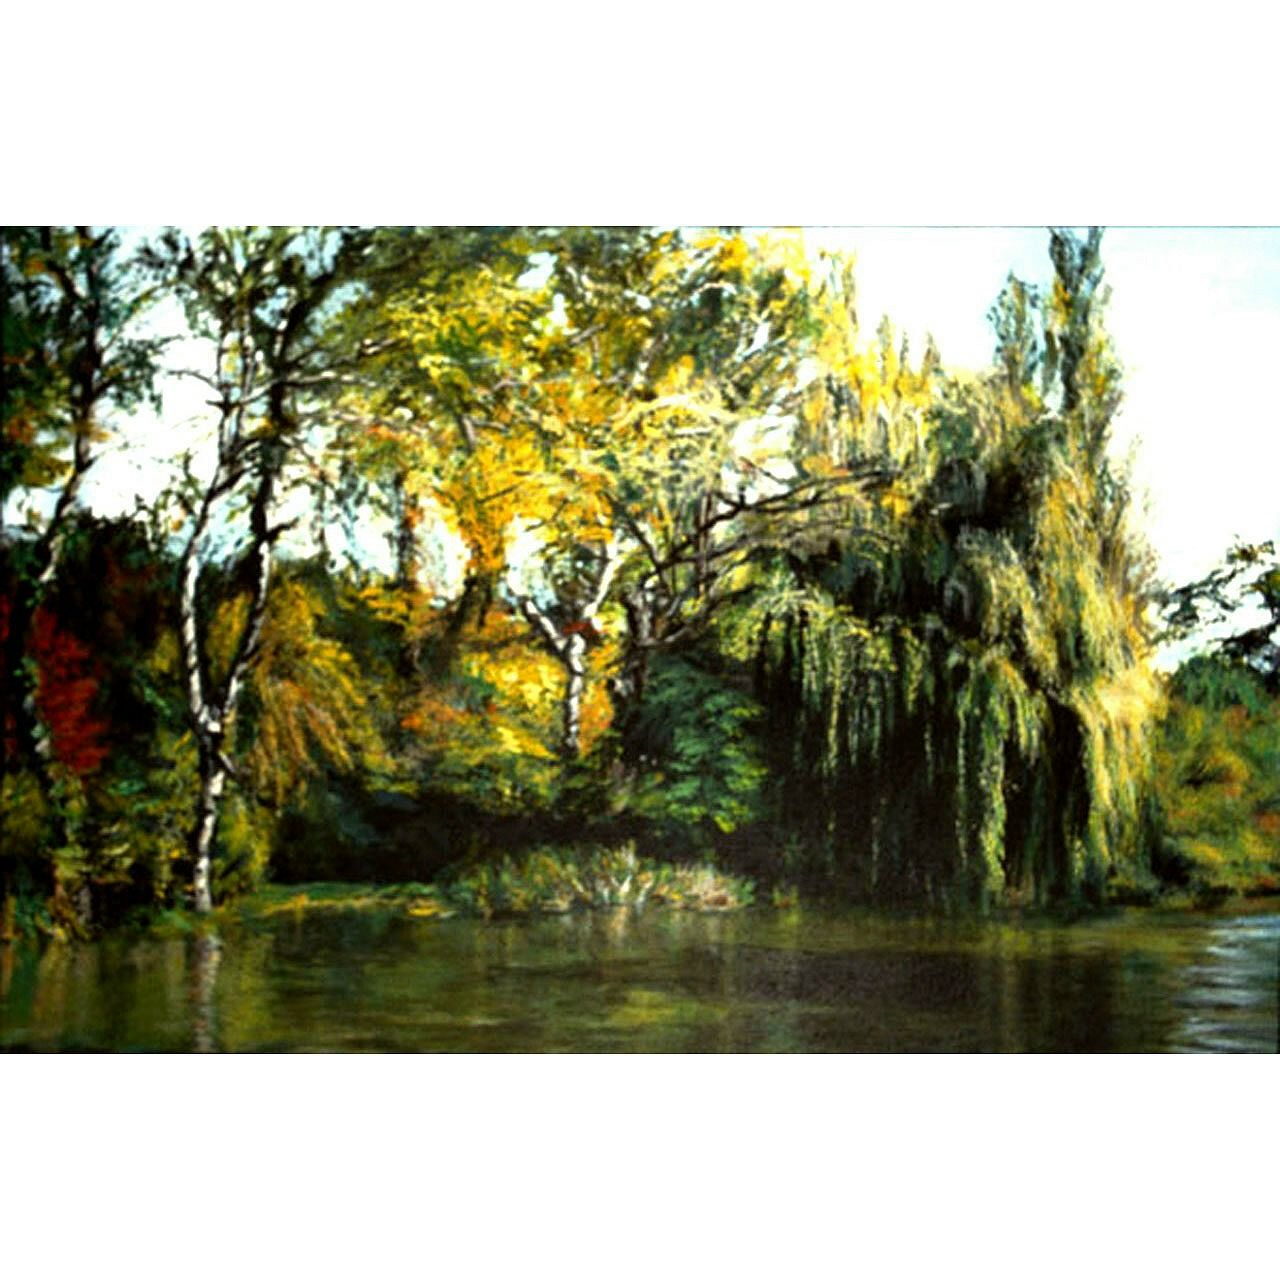 View on the Kamchia is a scene I painted based on a riverboat trip I took in Bulgaria, from a boat that was going up the river for the joy of it. The side of the river in view is unspoiled forest, and it was a lush display in October. The painting is acrylic on stretched canvas with painted sides. It is 24 inches high x 36 inches wide, and is $3,000.